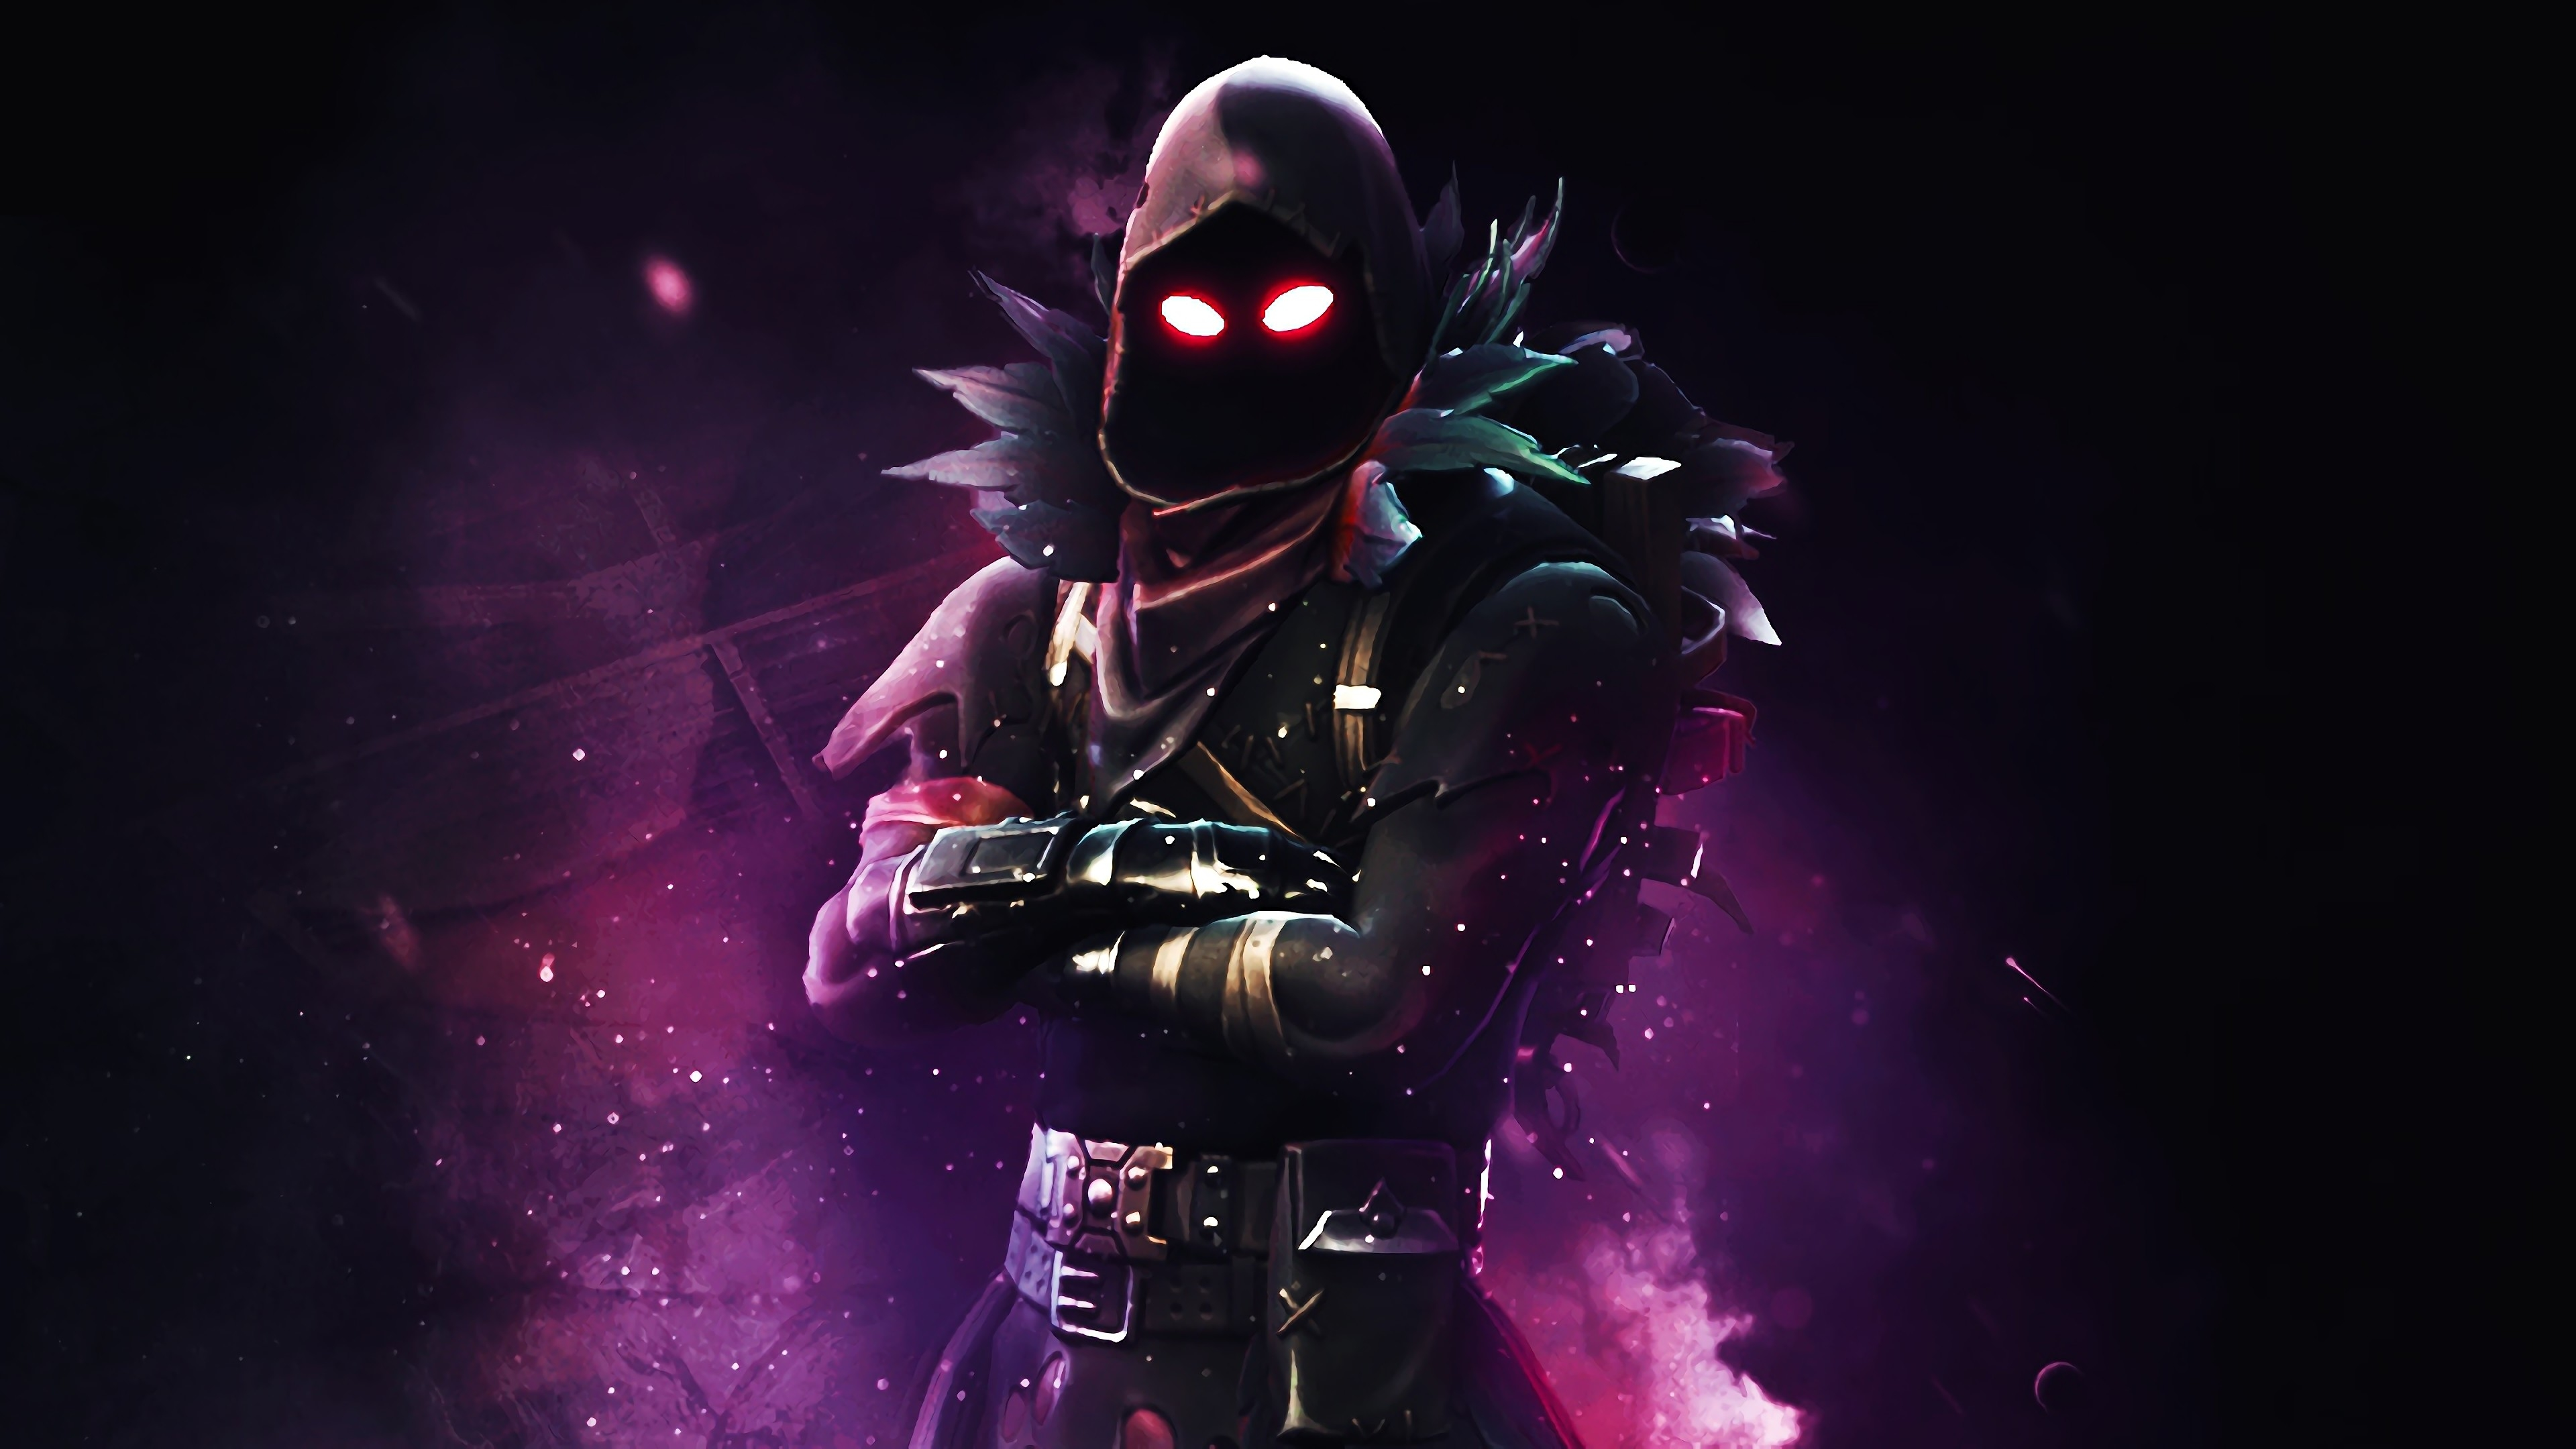 Raven Fortnite Battle Royale 4k Background Hd Games 4k Wallpapers Images Photos And Background